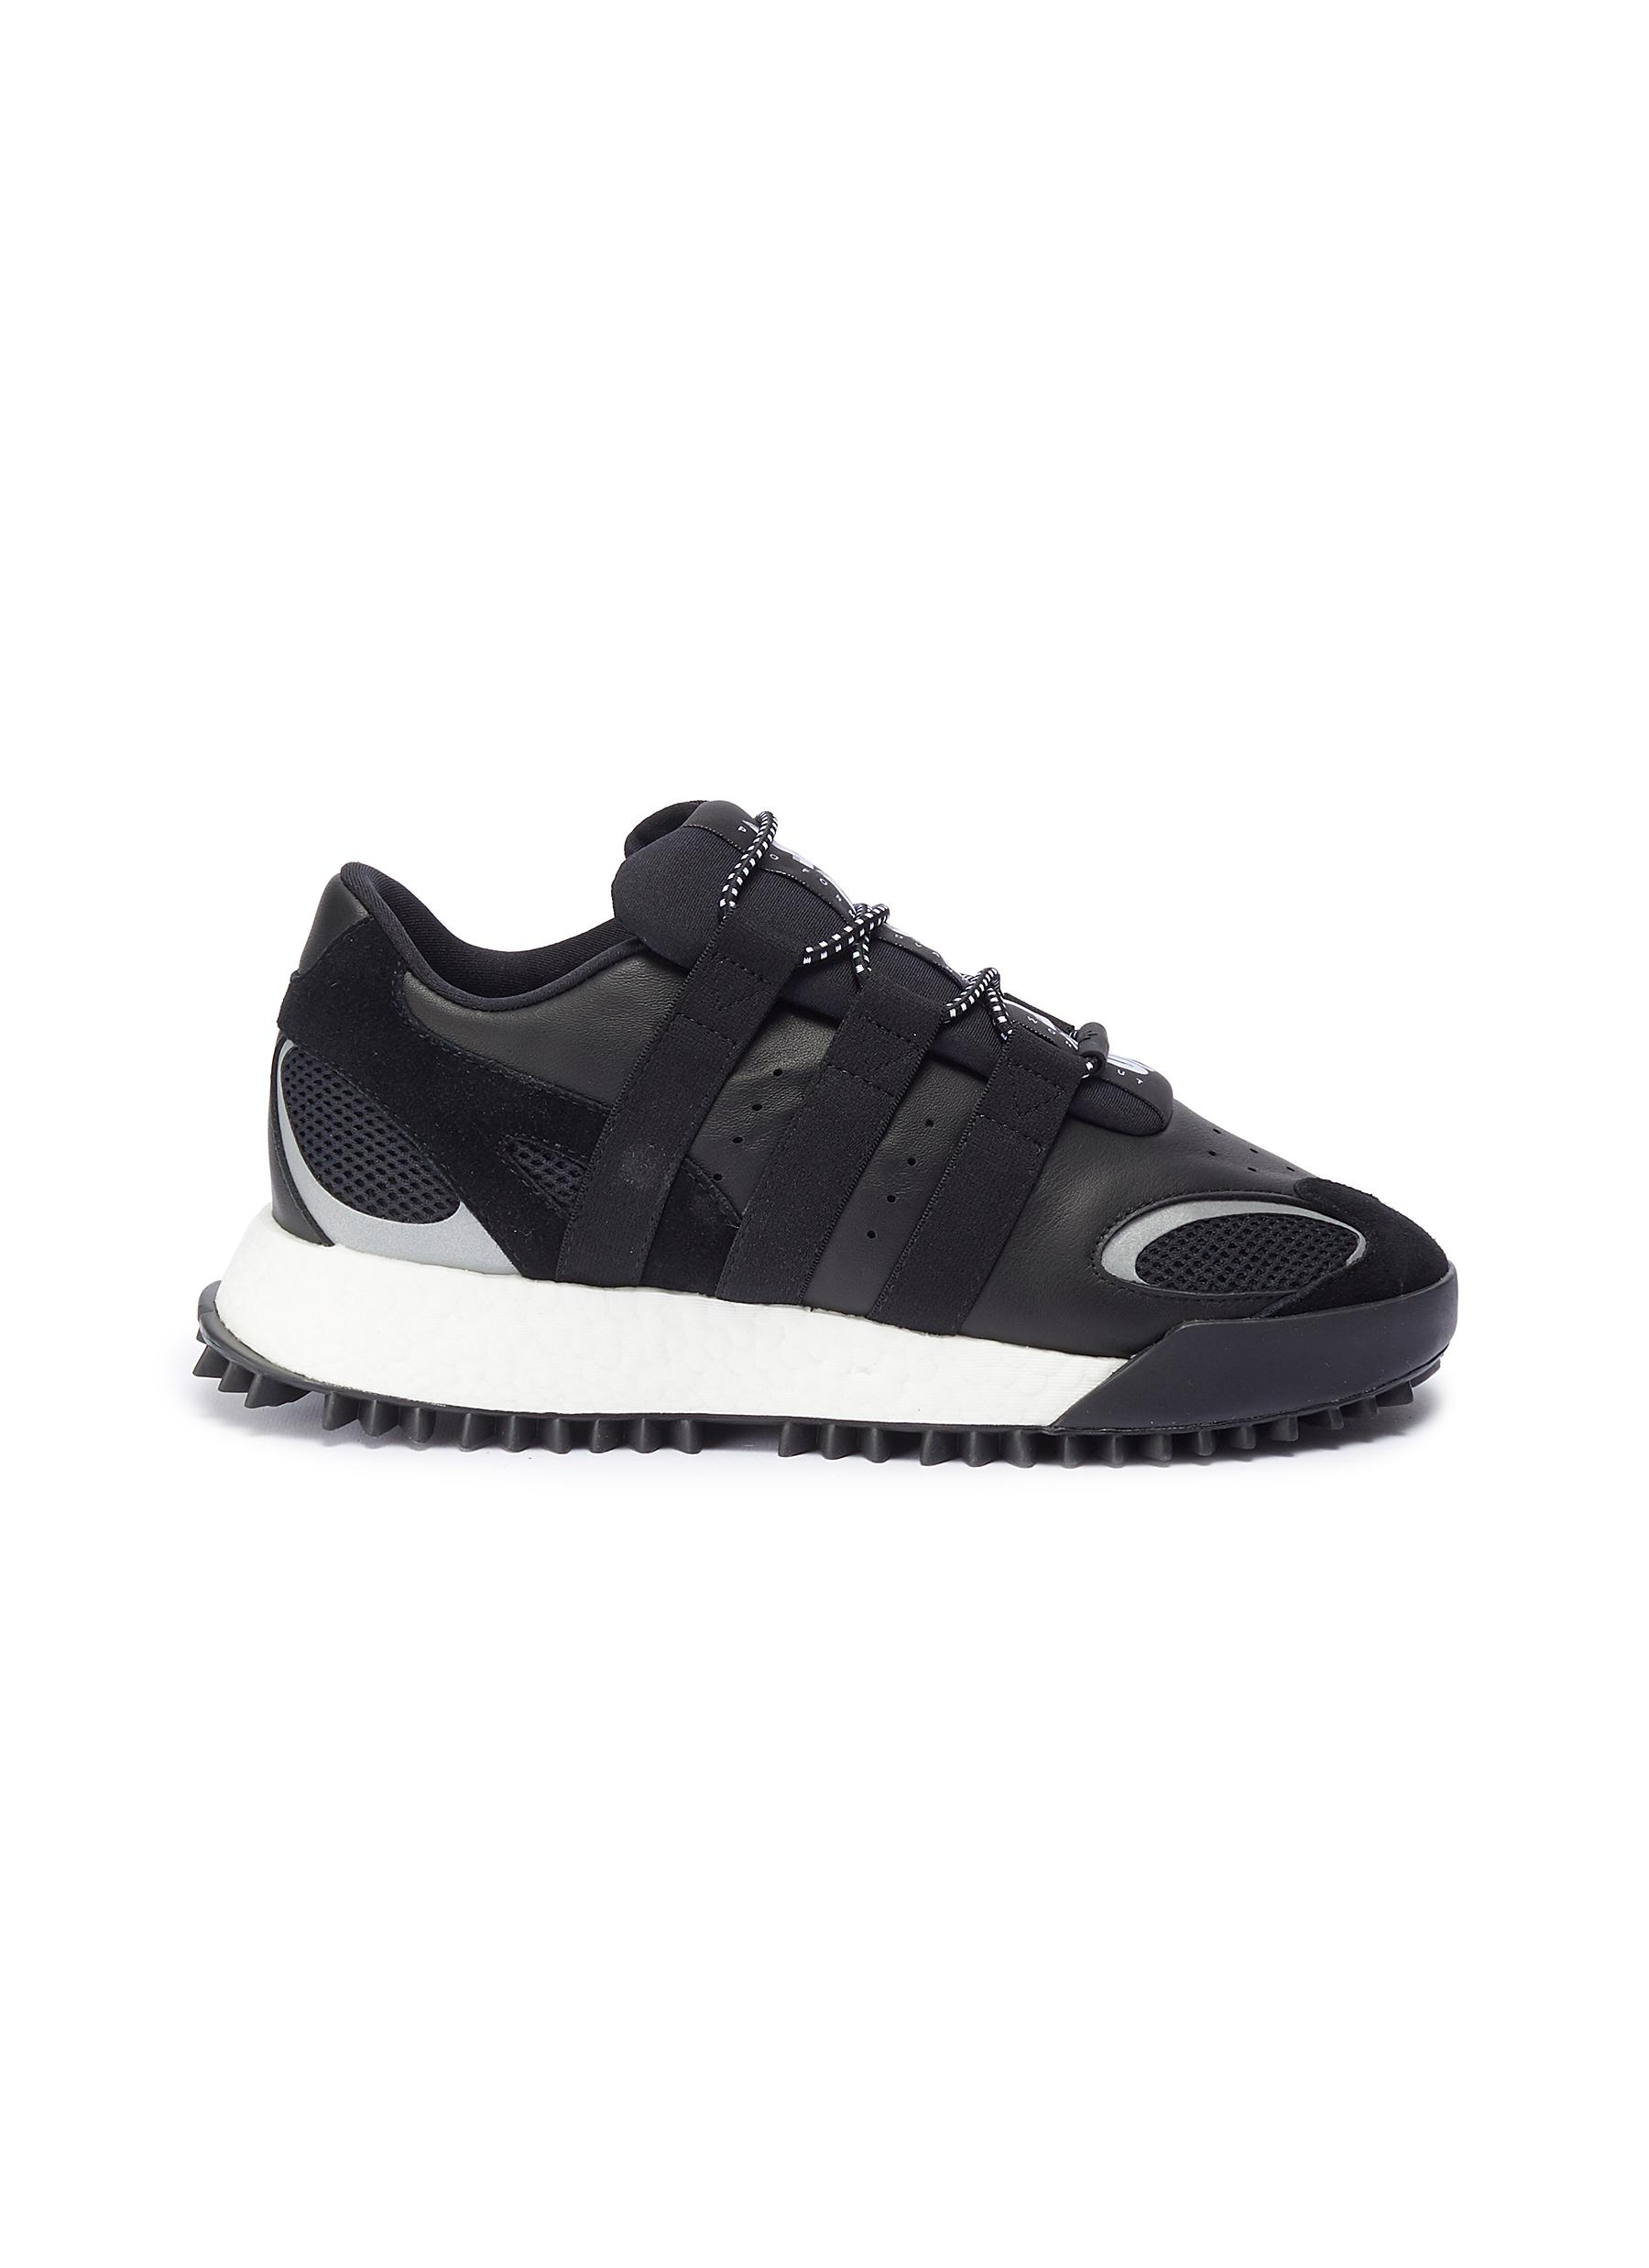 Wangbody Run leather sneakers by Adidas Originals By Alexander Wang